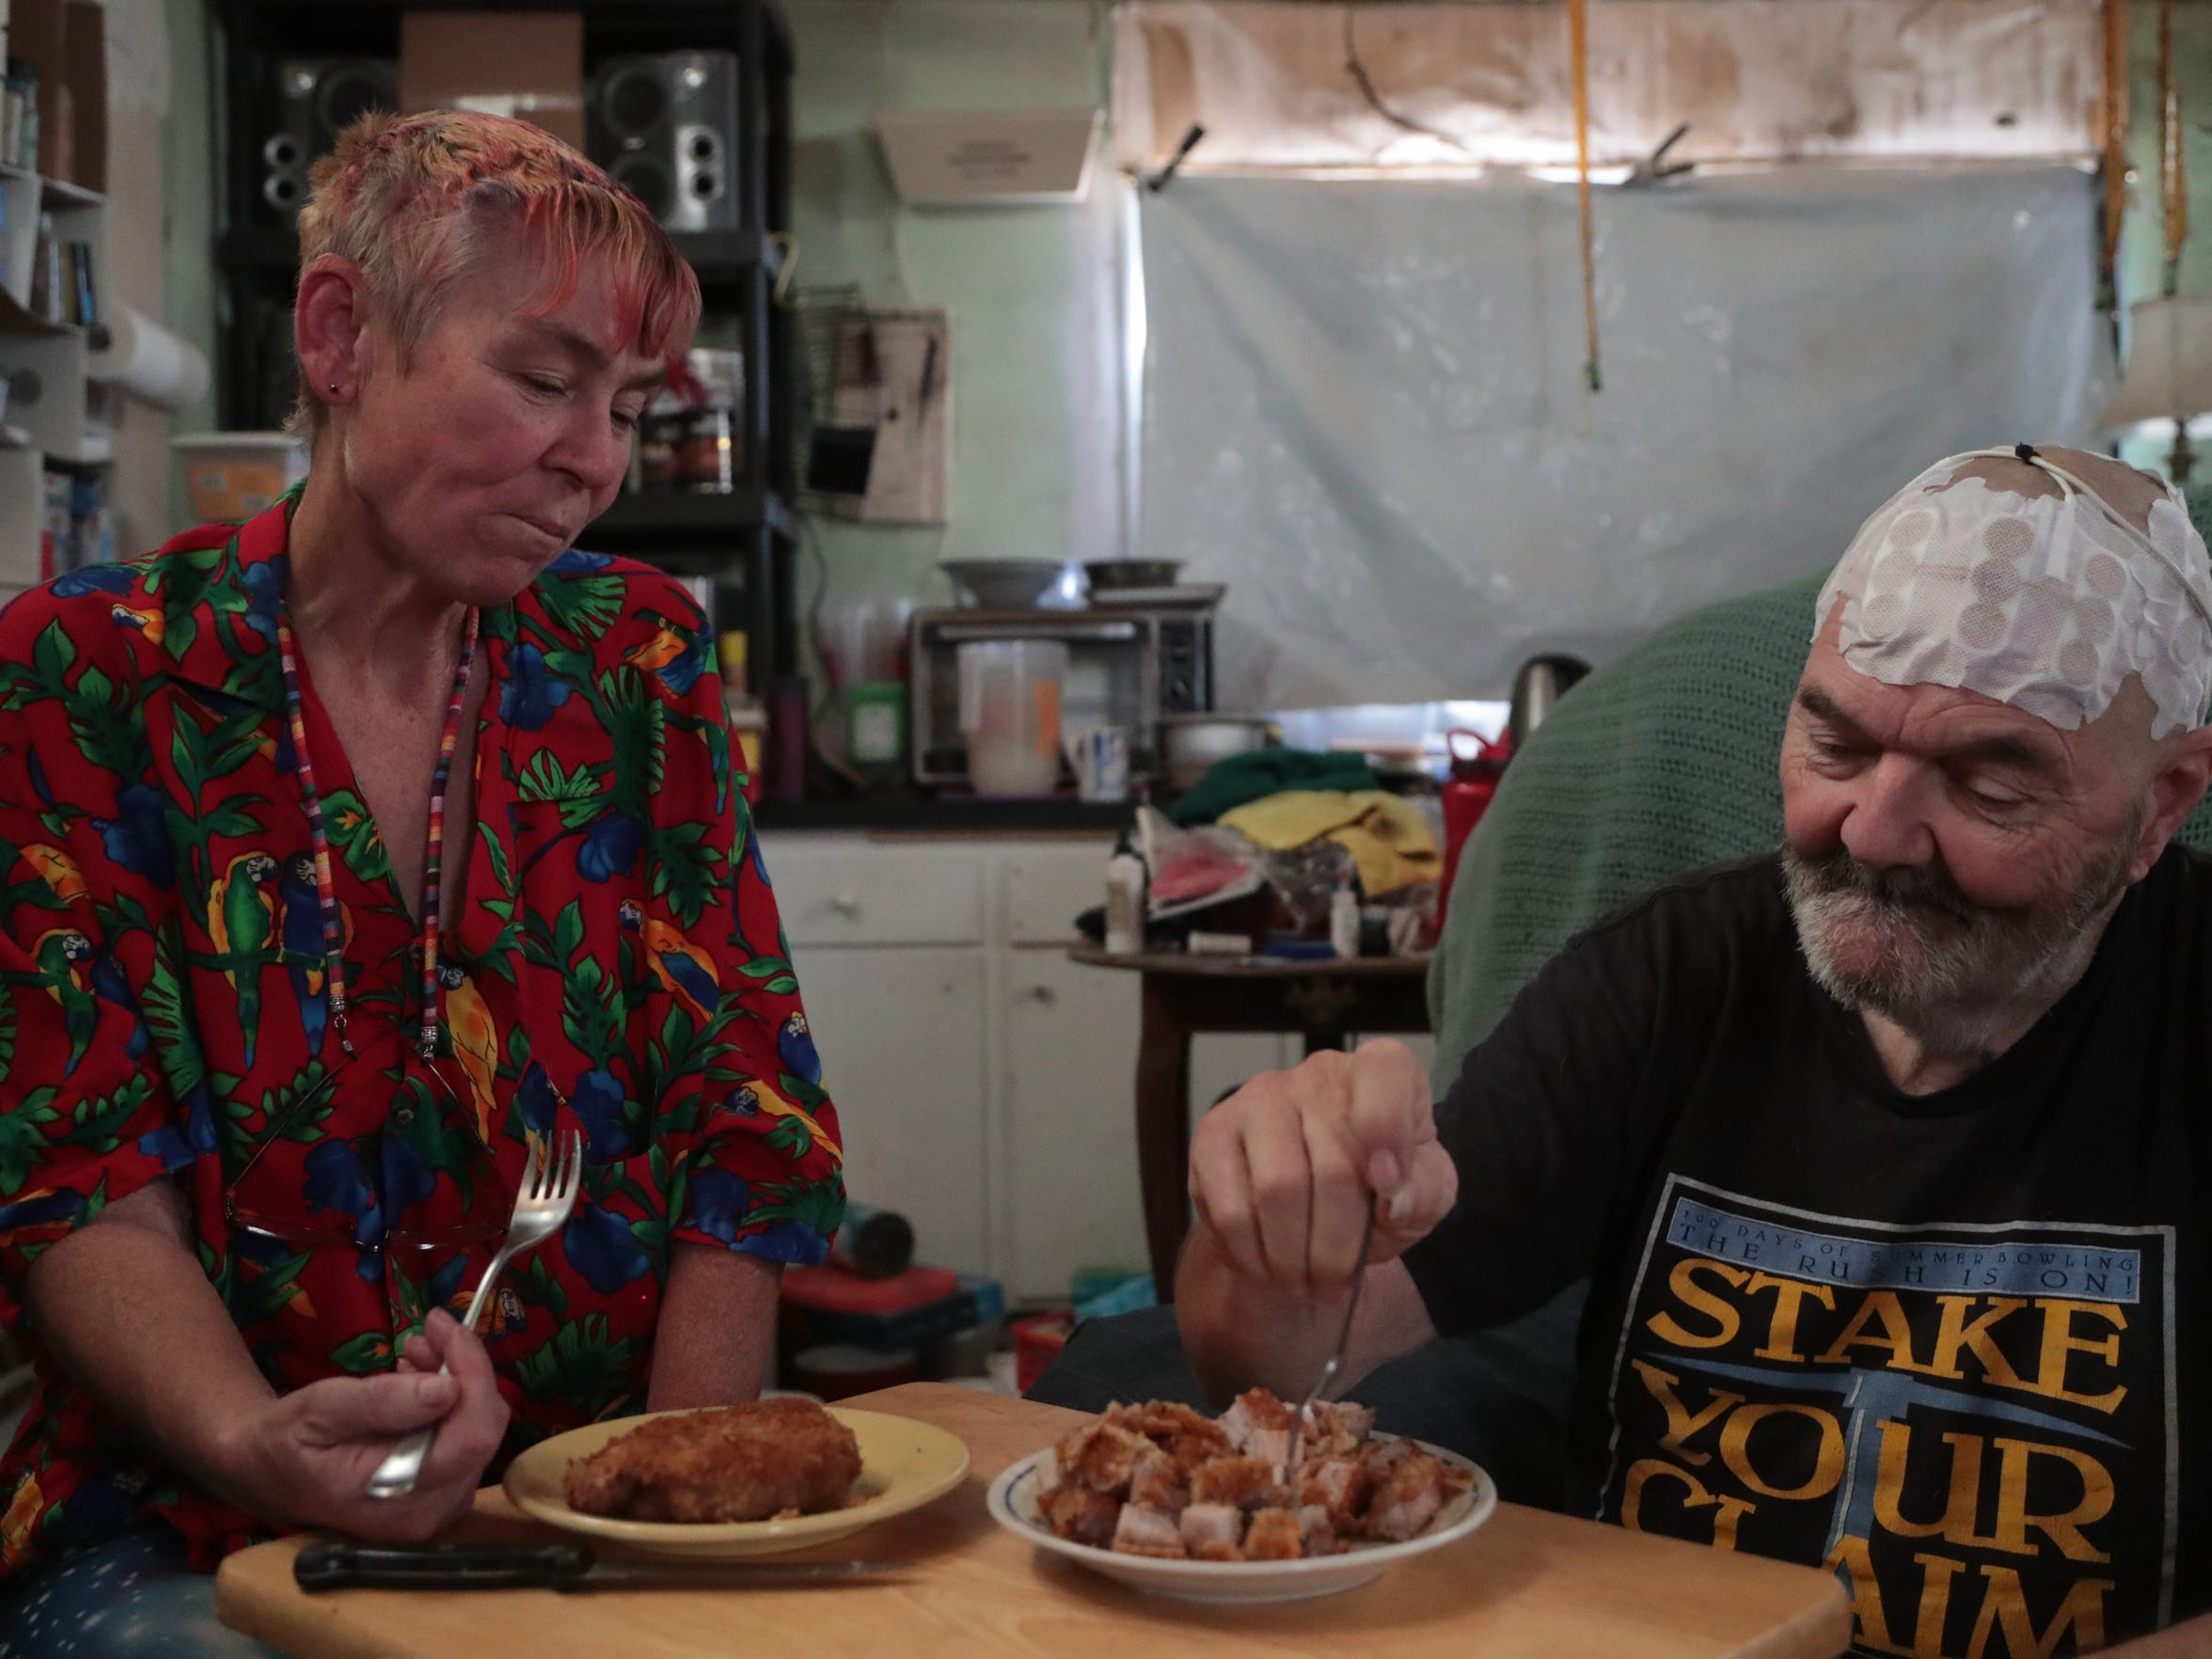 Zena Awesome eats fried pork chops for lunch with her husband Vandar in their Wonder Valley home. She cuts his into small pieces, because he does not have teeth.